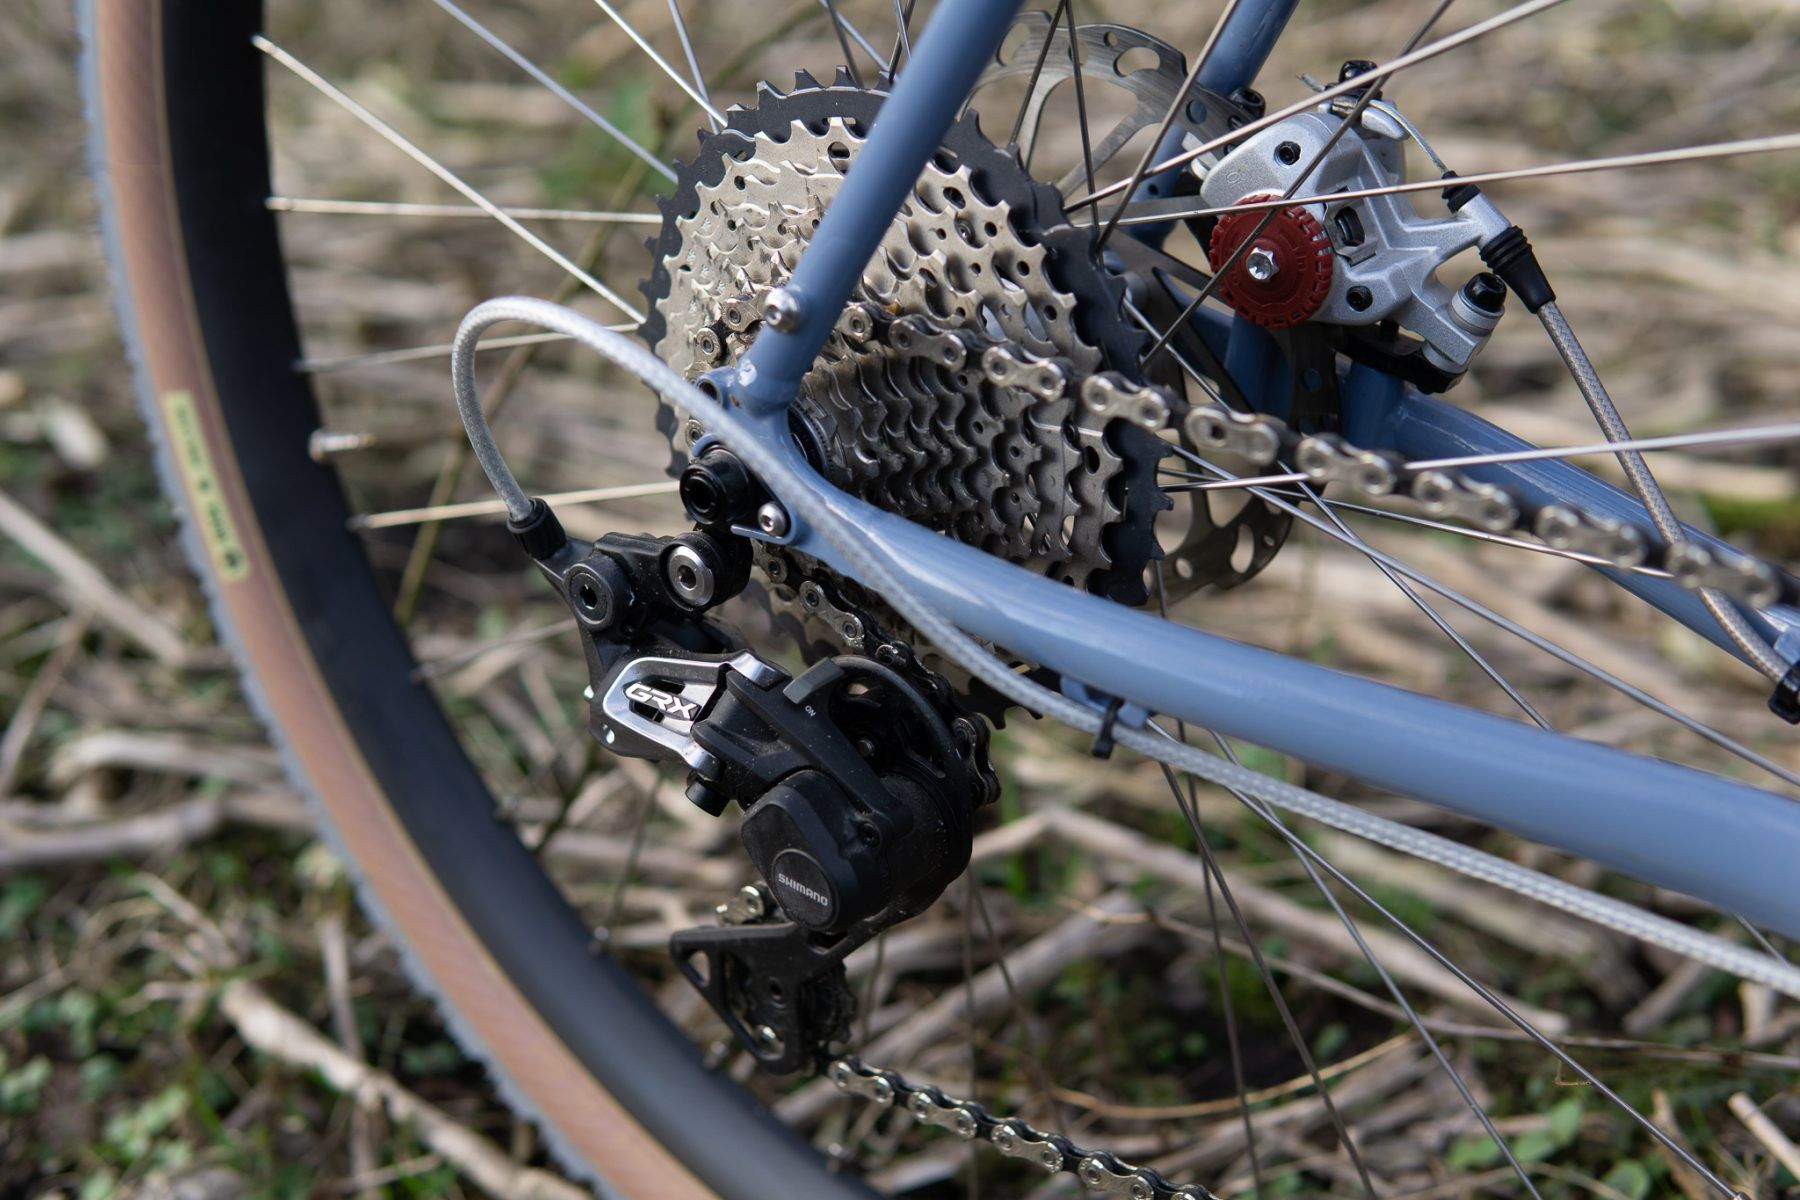 Singular Peregrine derailleur close-up